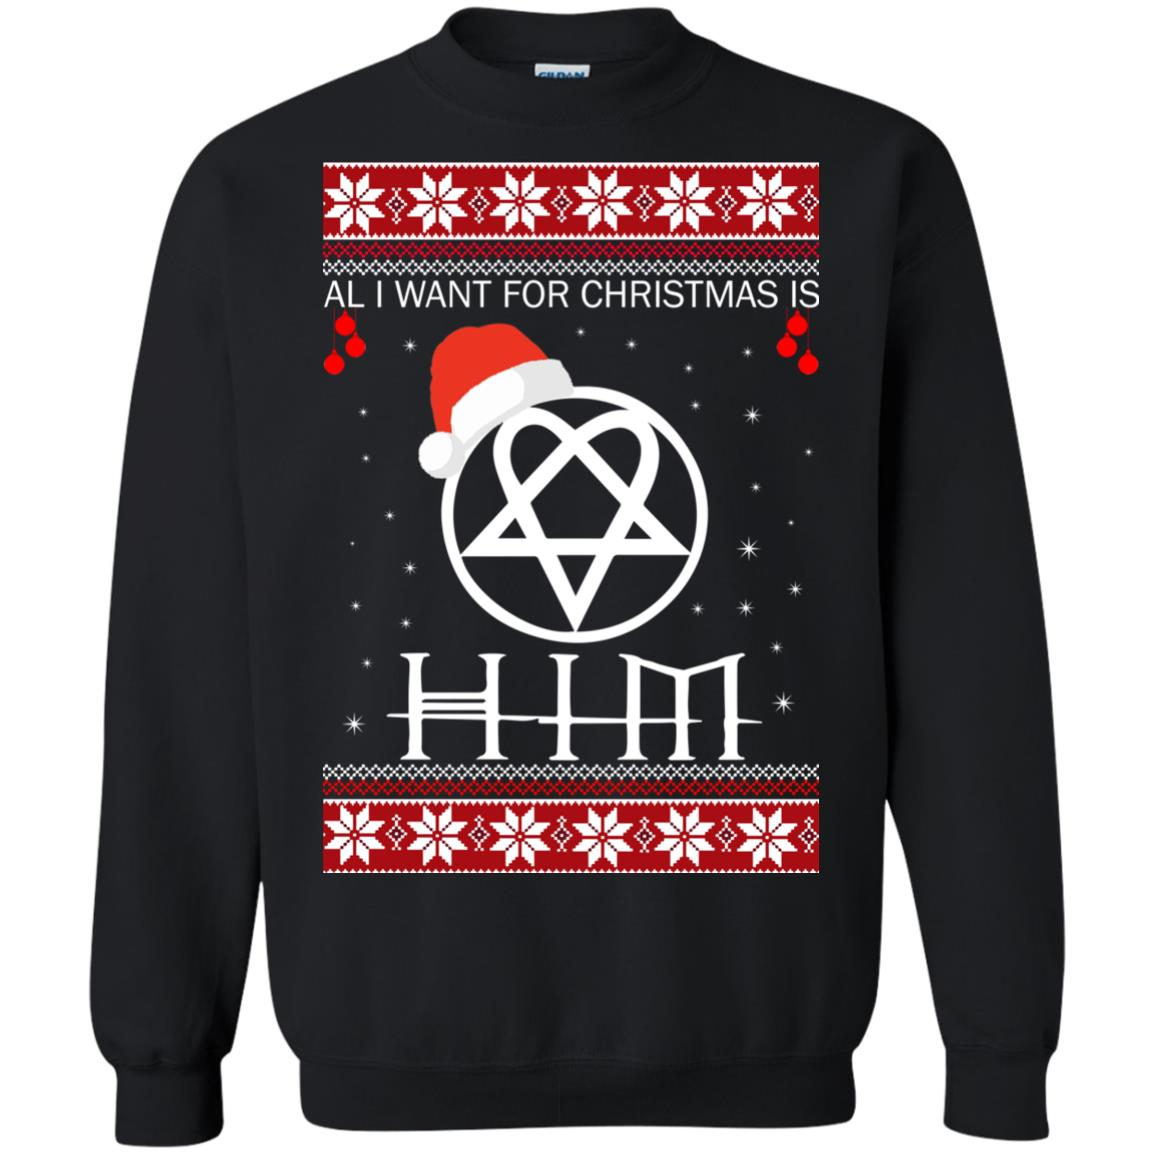 Band Ugly Christmas Sweaters.Rock Band All I Want For Christmas Is Him Ugly Sweater Shirt Icestork